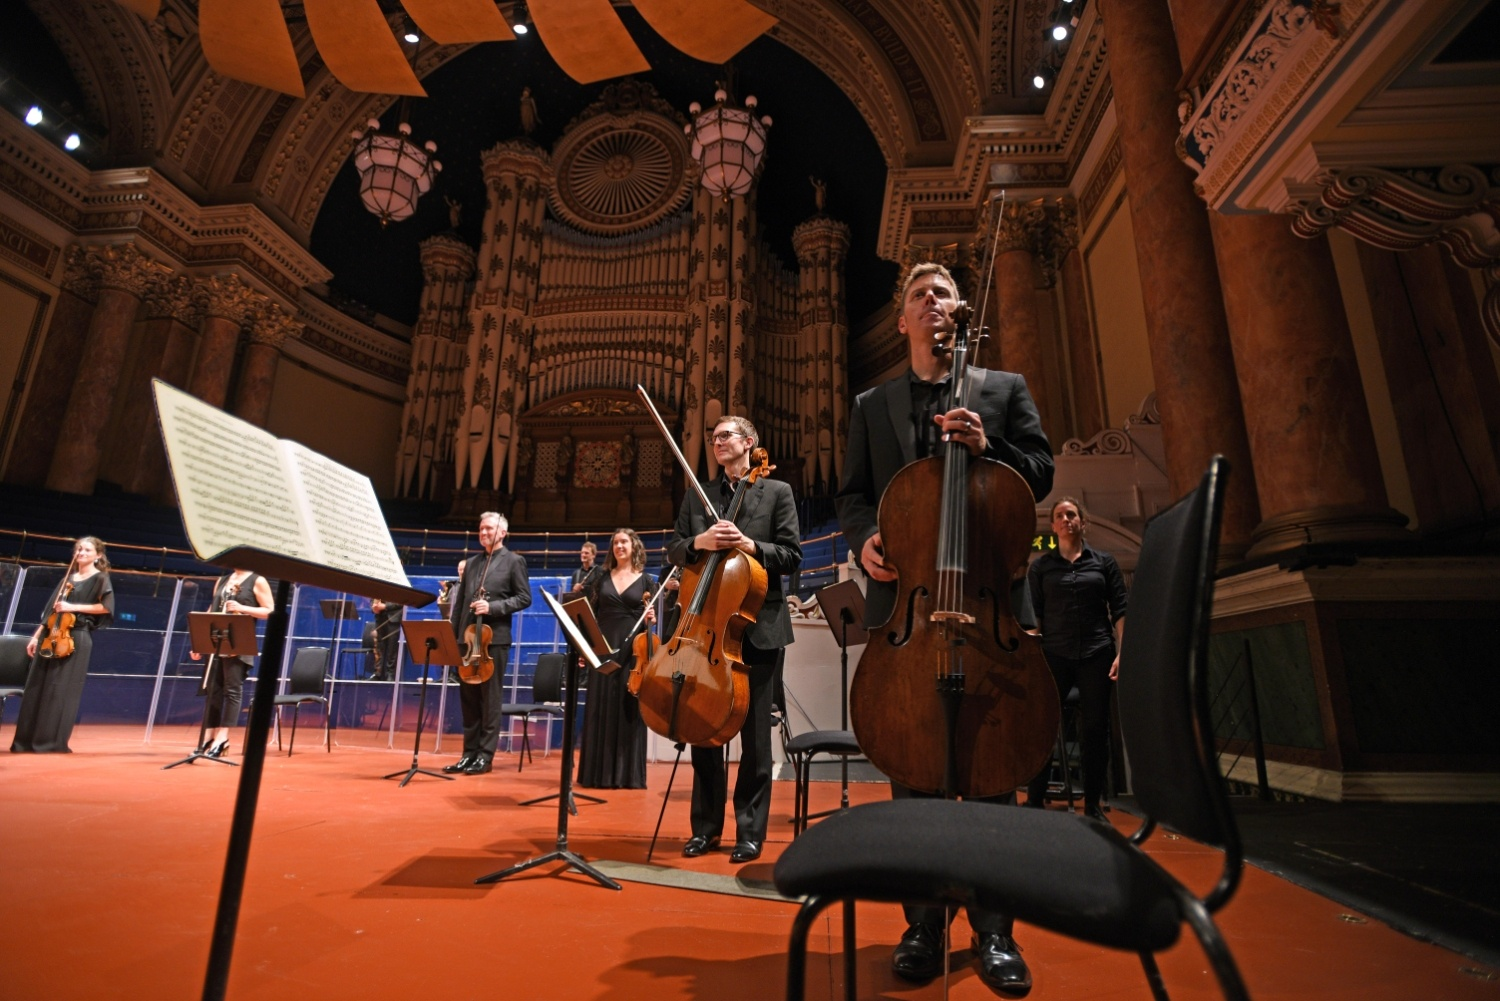 Orchestra of Opera North Performing first live concert after lockdown, credit Guzelian